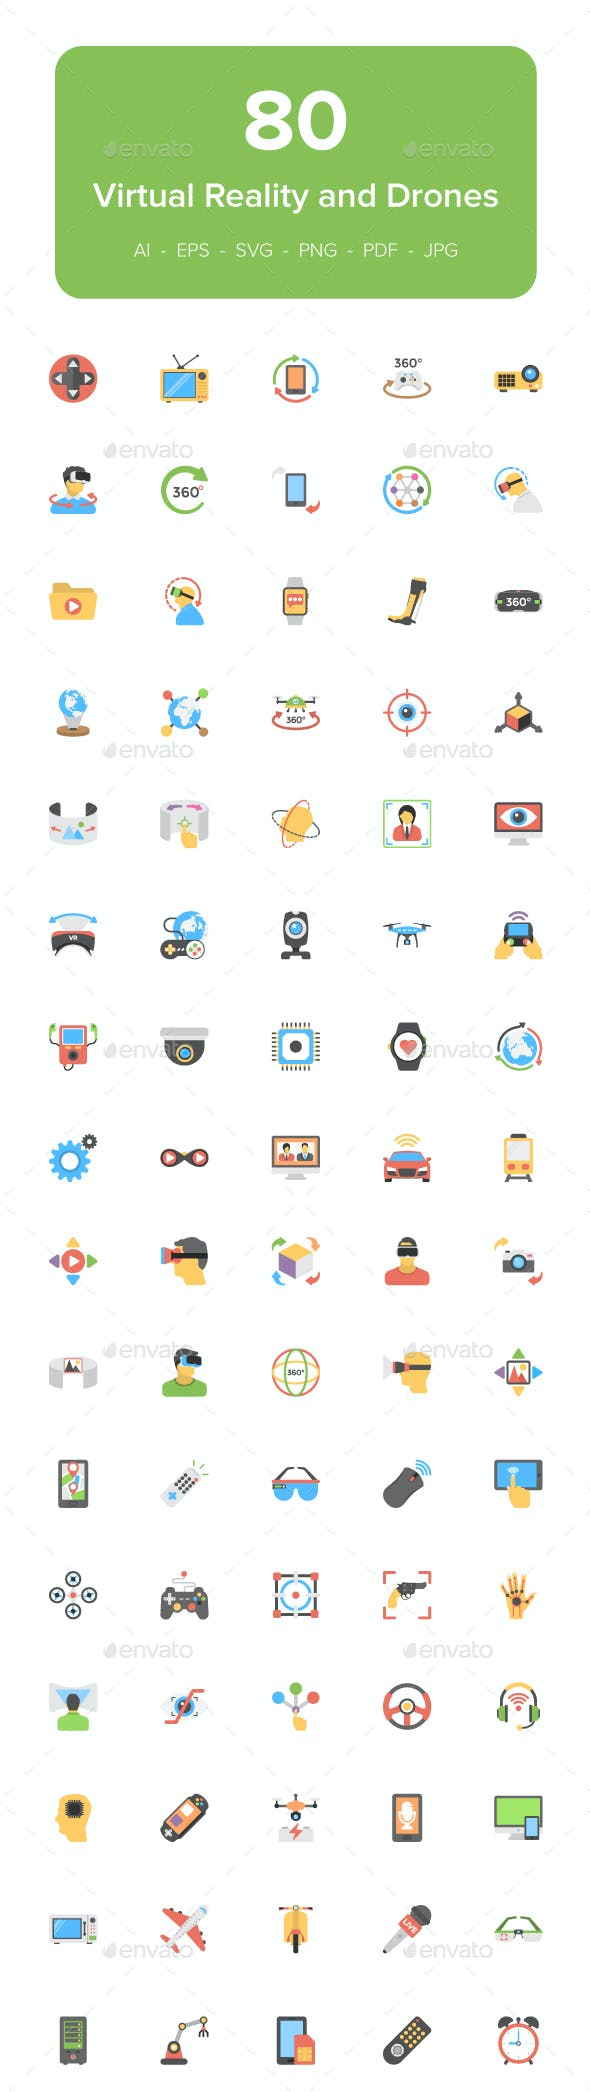 80 Virtual Reality and Drones Icons